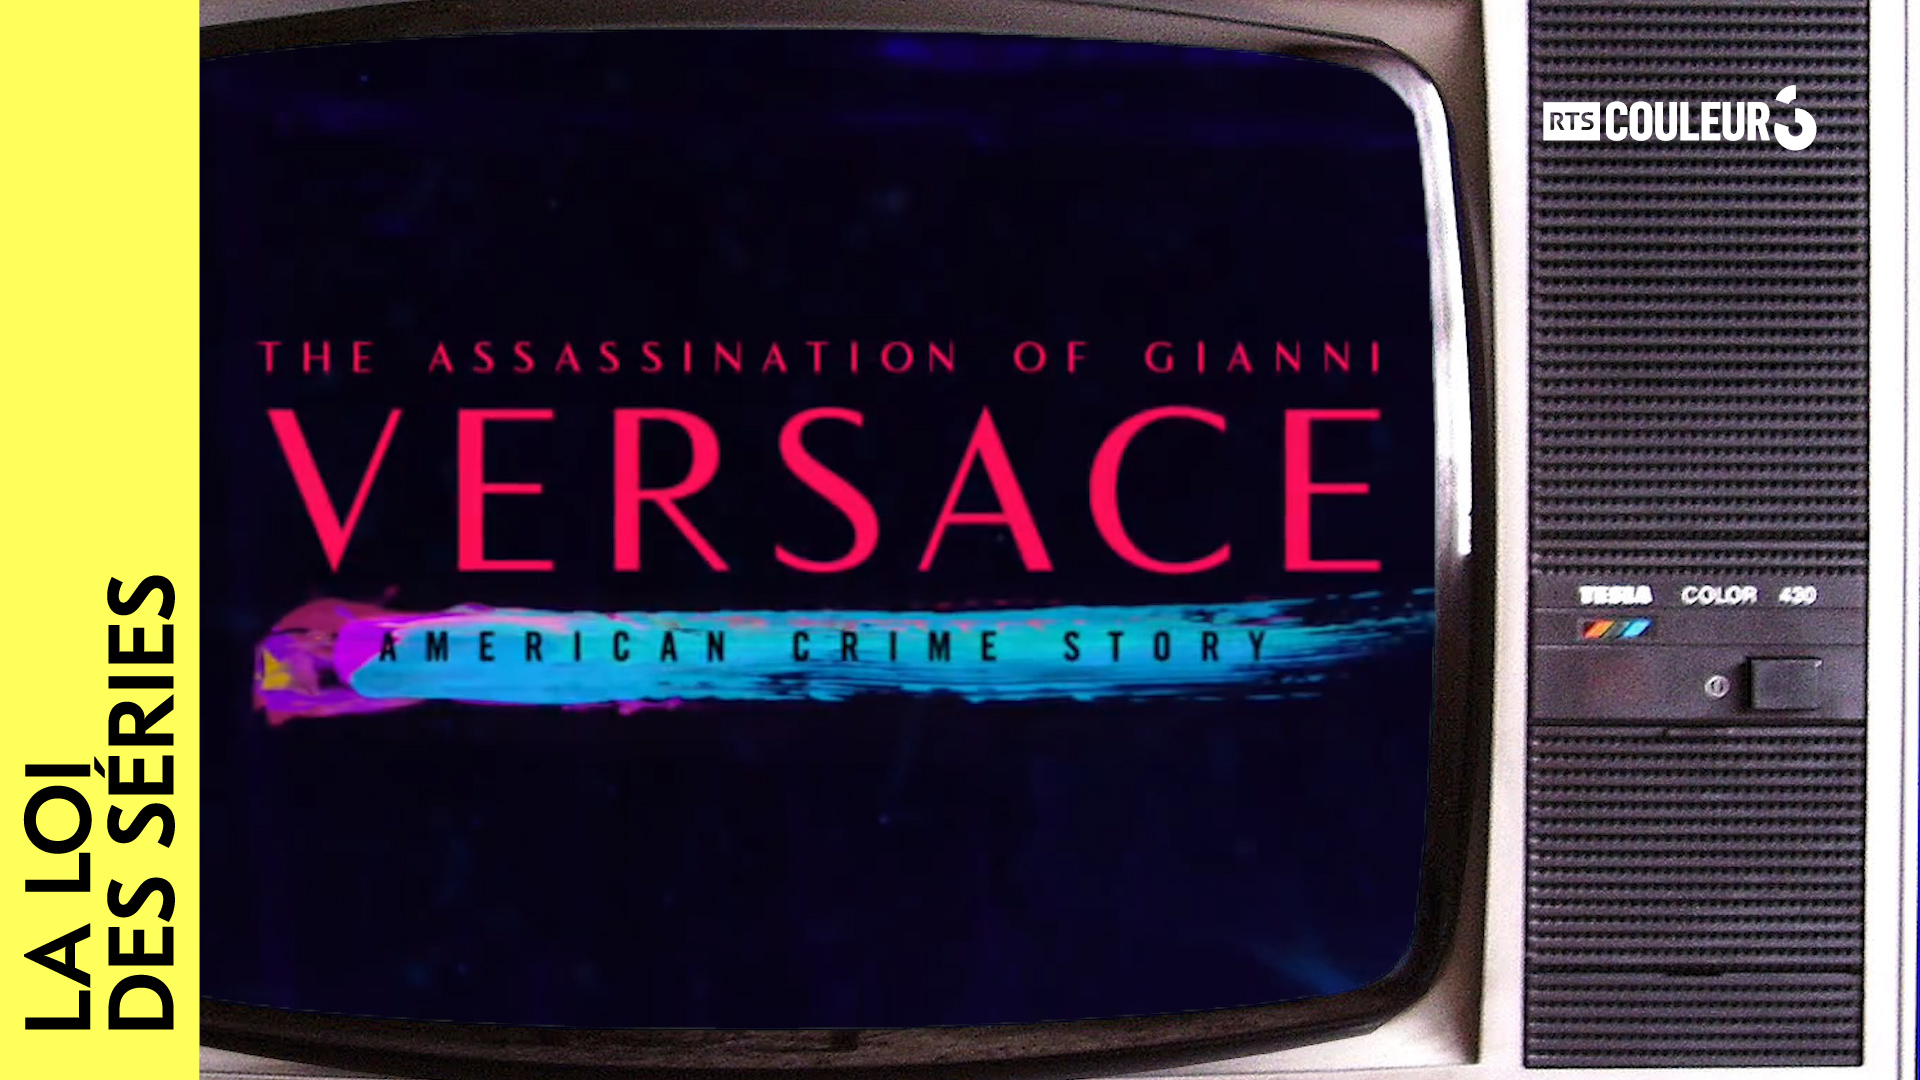 La loi des séries - American Crime Story: The Assassination of Gianni Versace